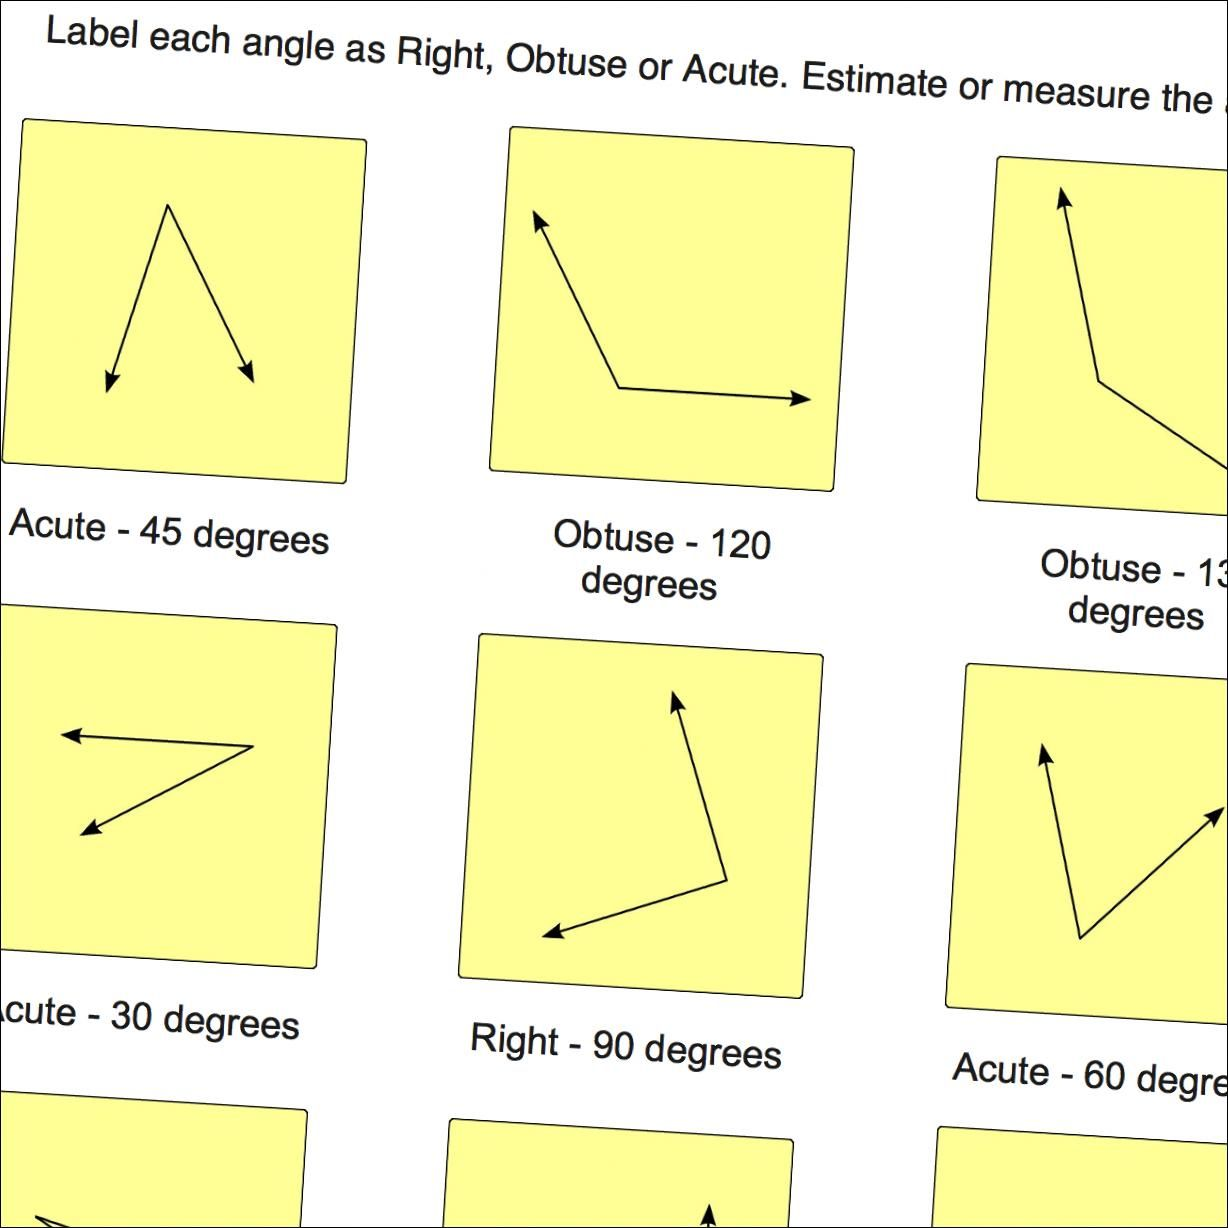 Geometry worksheets label angles as right obtuse or acute label angles as right obtuse or acute optionally estimate or use a protractor to measure the actual angles nvjuhfo Images